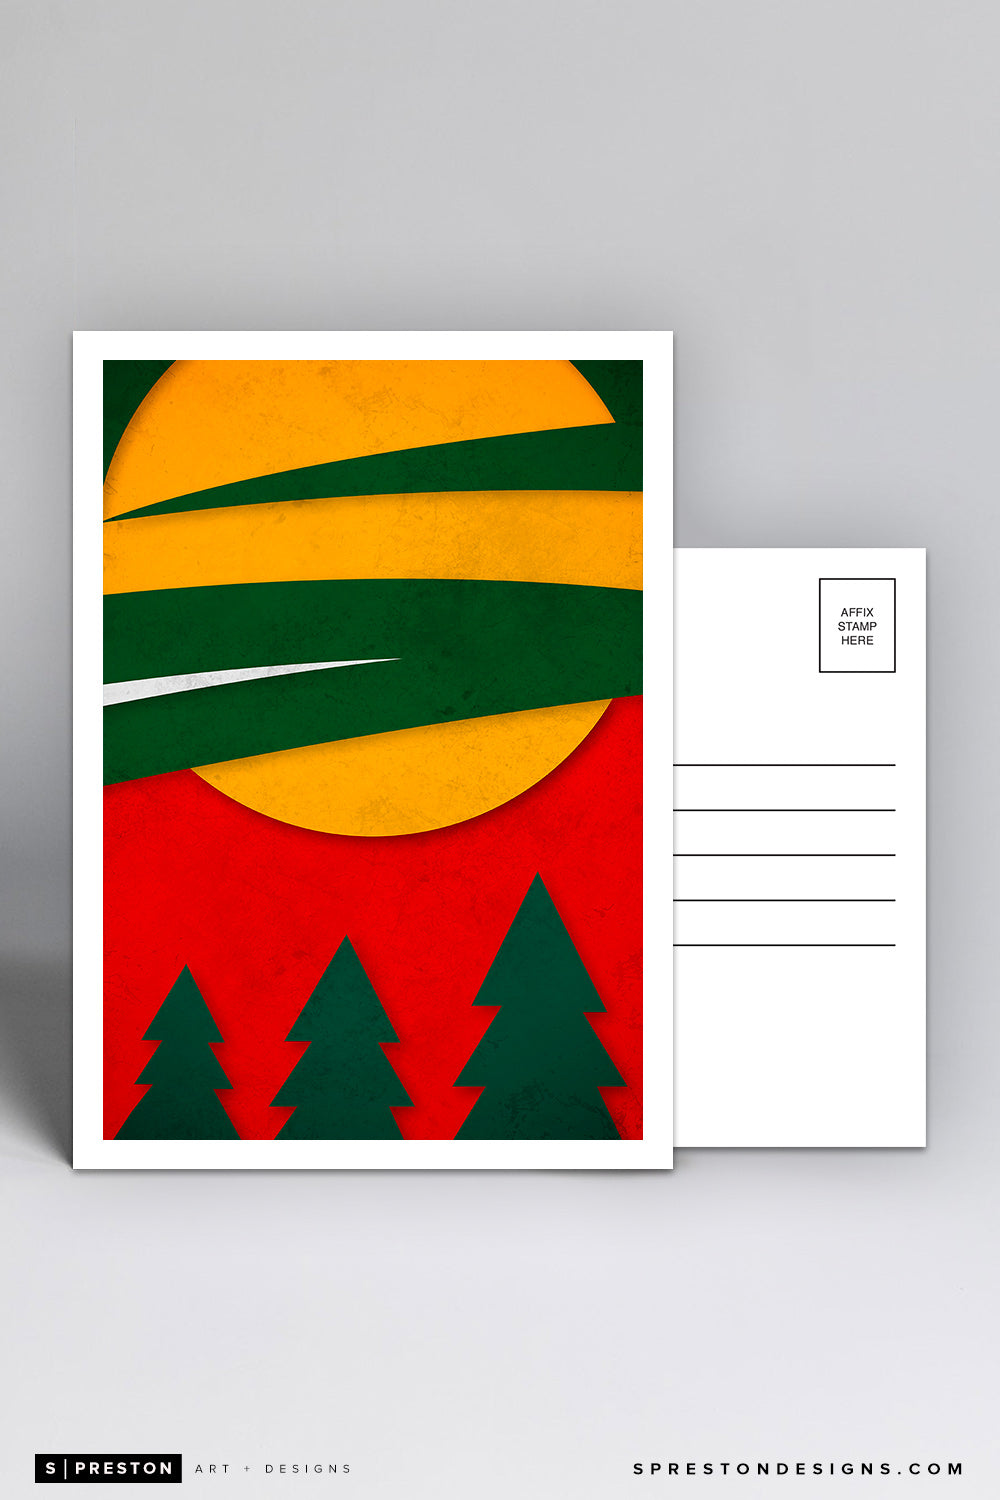 Minimalist Logo - Minnesota Wild Postcard NHL Licensed - S. Preston